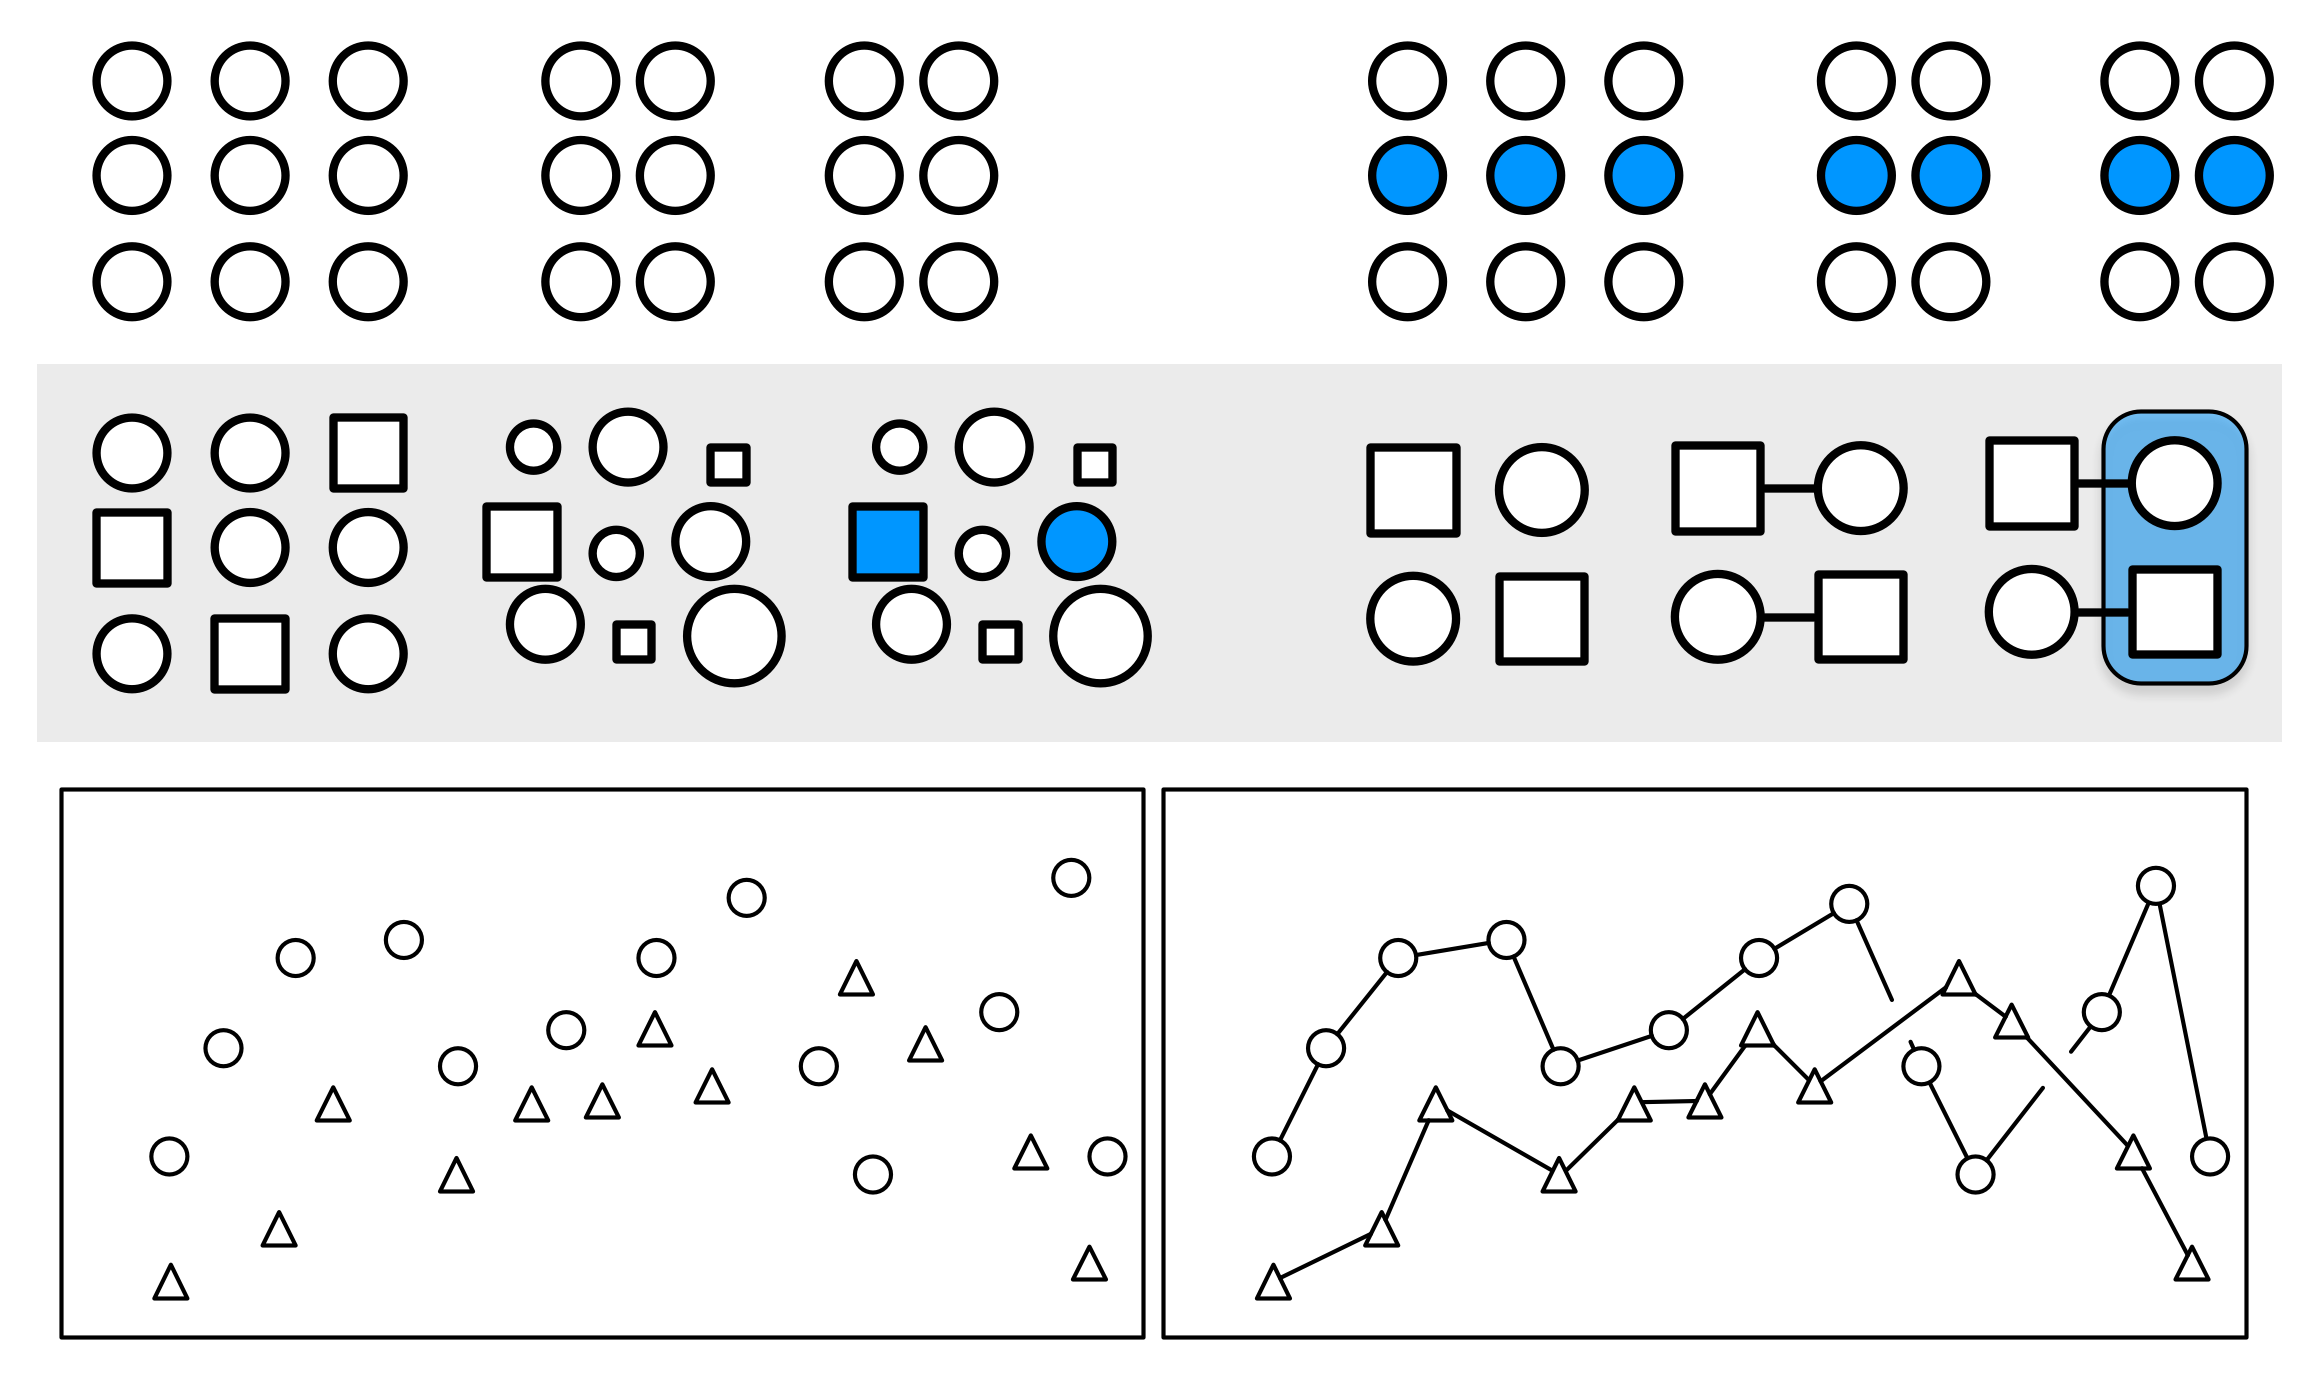 Gestalt inferences: Proximity, Similarity, Connection, Common Fate. The layout of the figure employs some of these principles, in addition to  displaying them